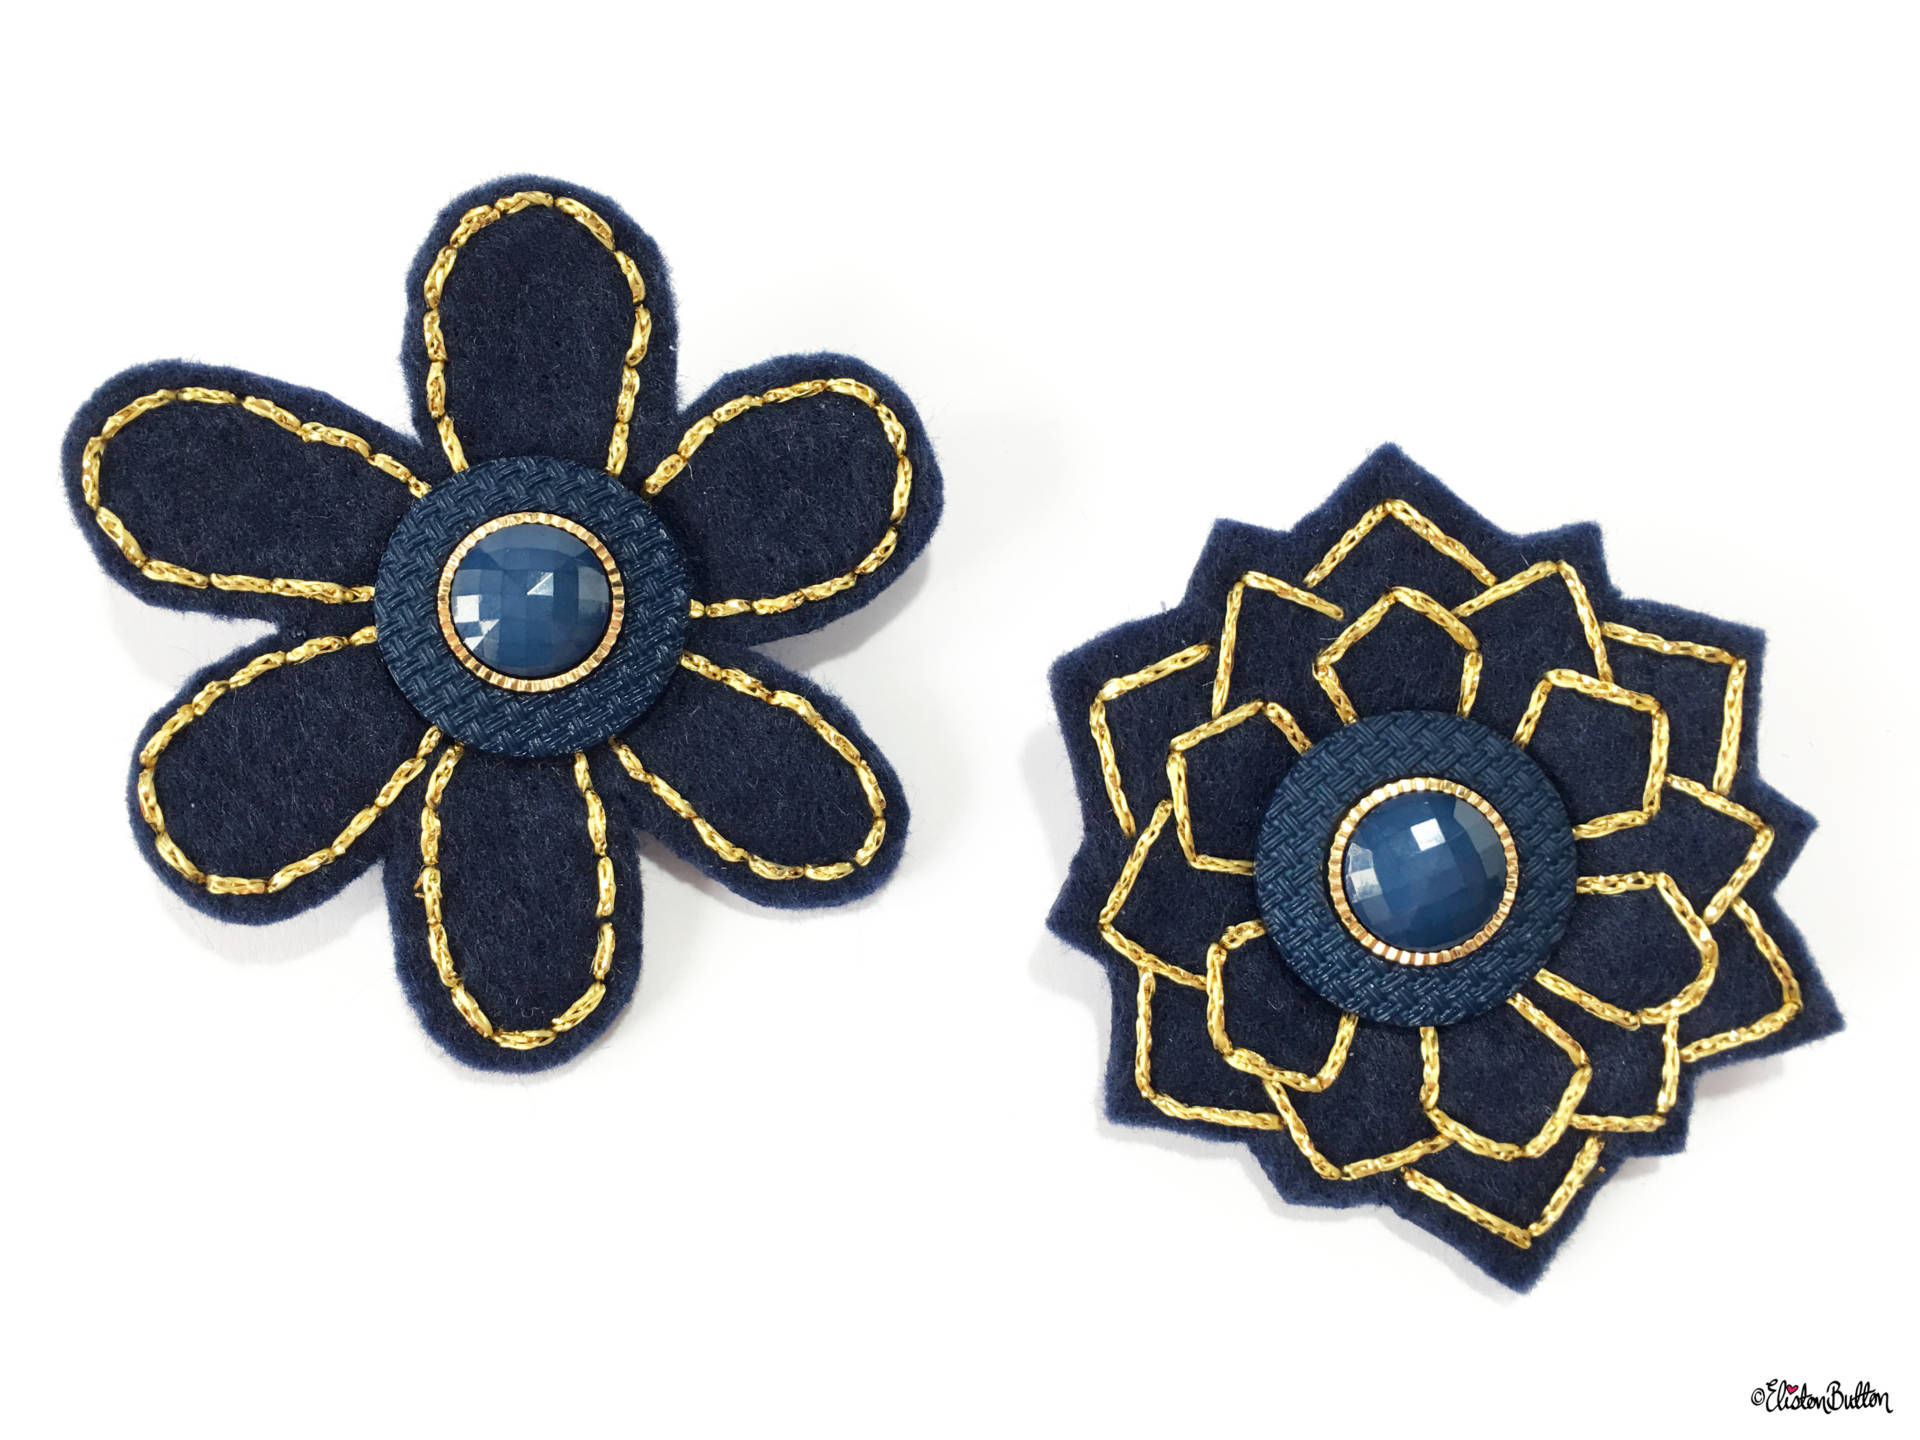 Navy Blue and Gold Embroidered Felt Lapel Pins - Create 30 - No. 5, 6, & 7 - Embroidered Felt Lapel Pins at www.elistonbutton.com - Eliston Button - That Crafty Kid – Art, Design, Craft & Adventure.